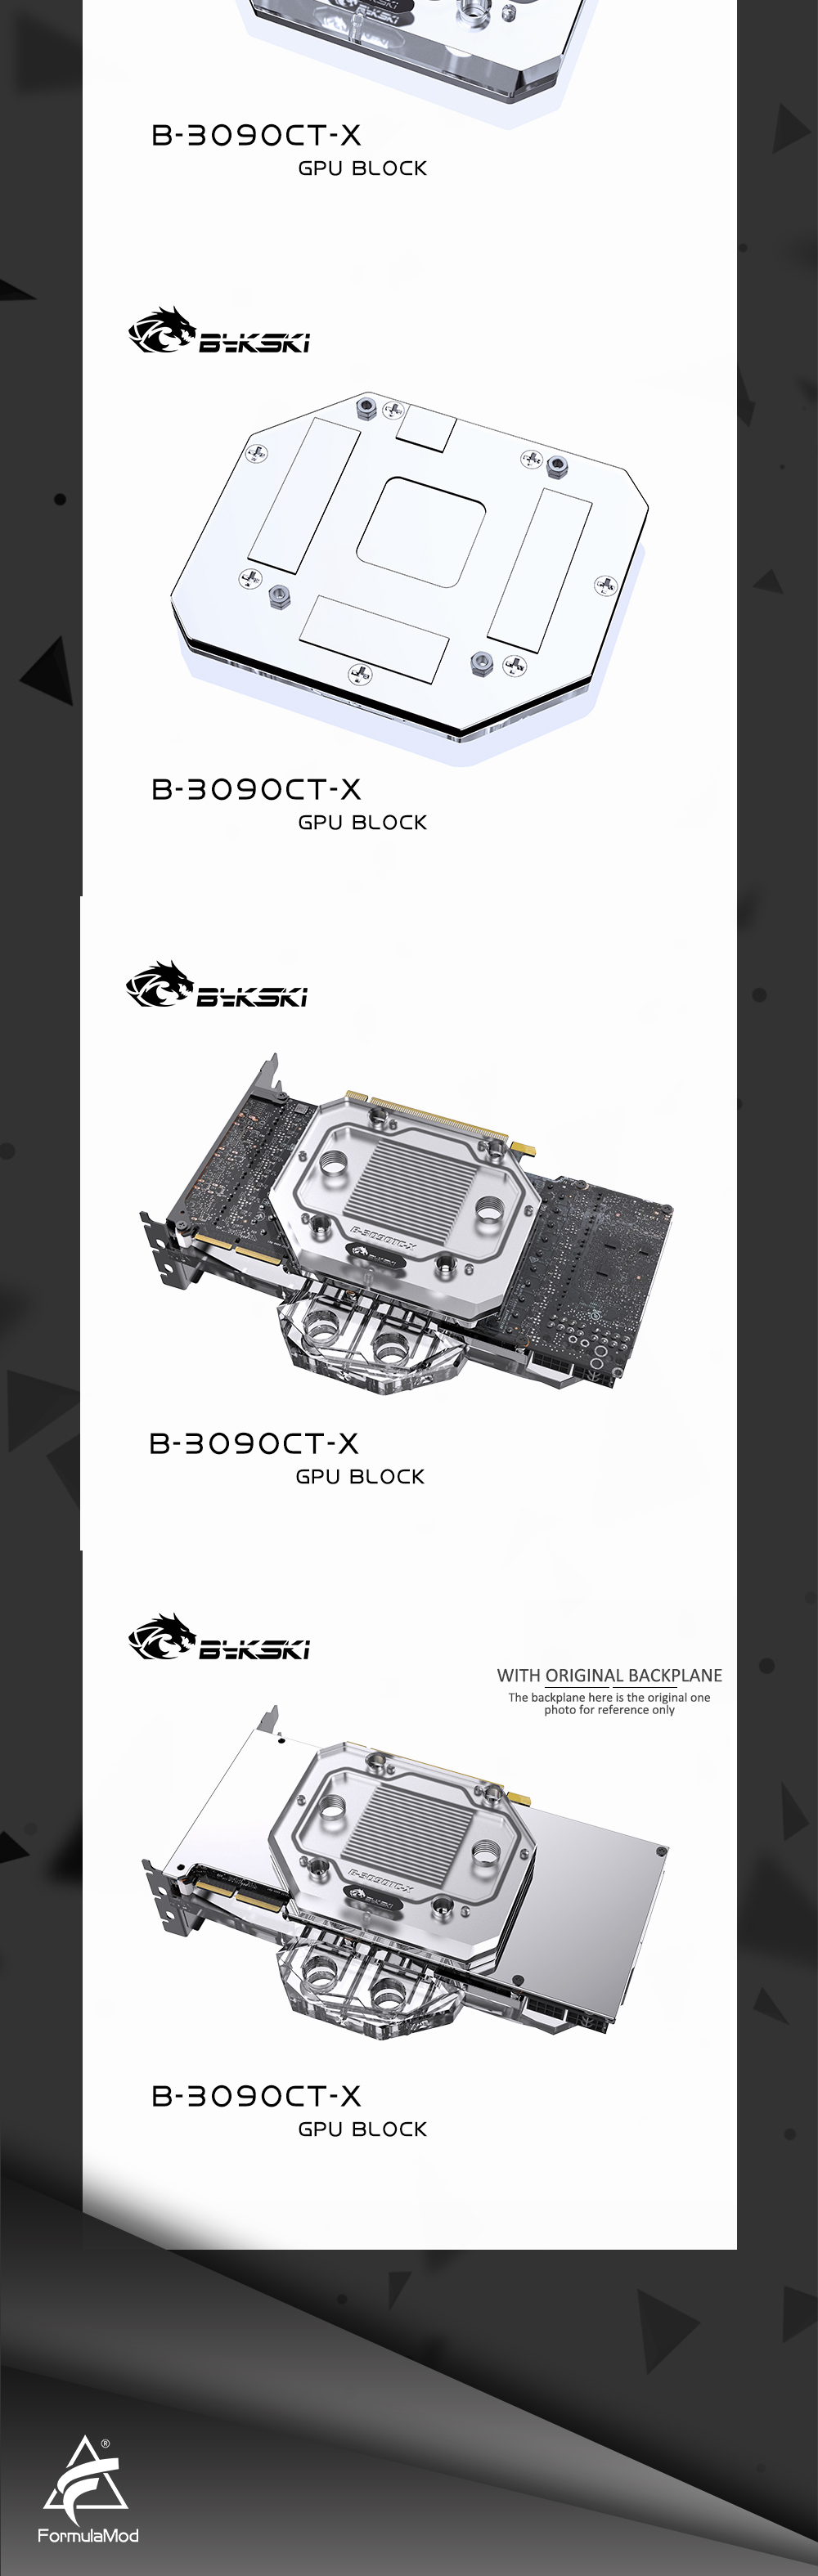 Bykski RTX 3090 GPU Backplane Water block Cooler for All 3090 series Graphic card , Mining Water Cooling backplate block